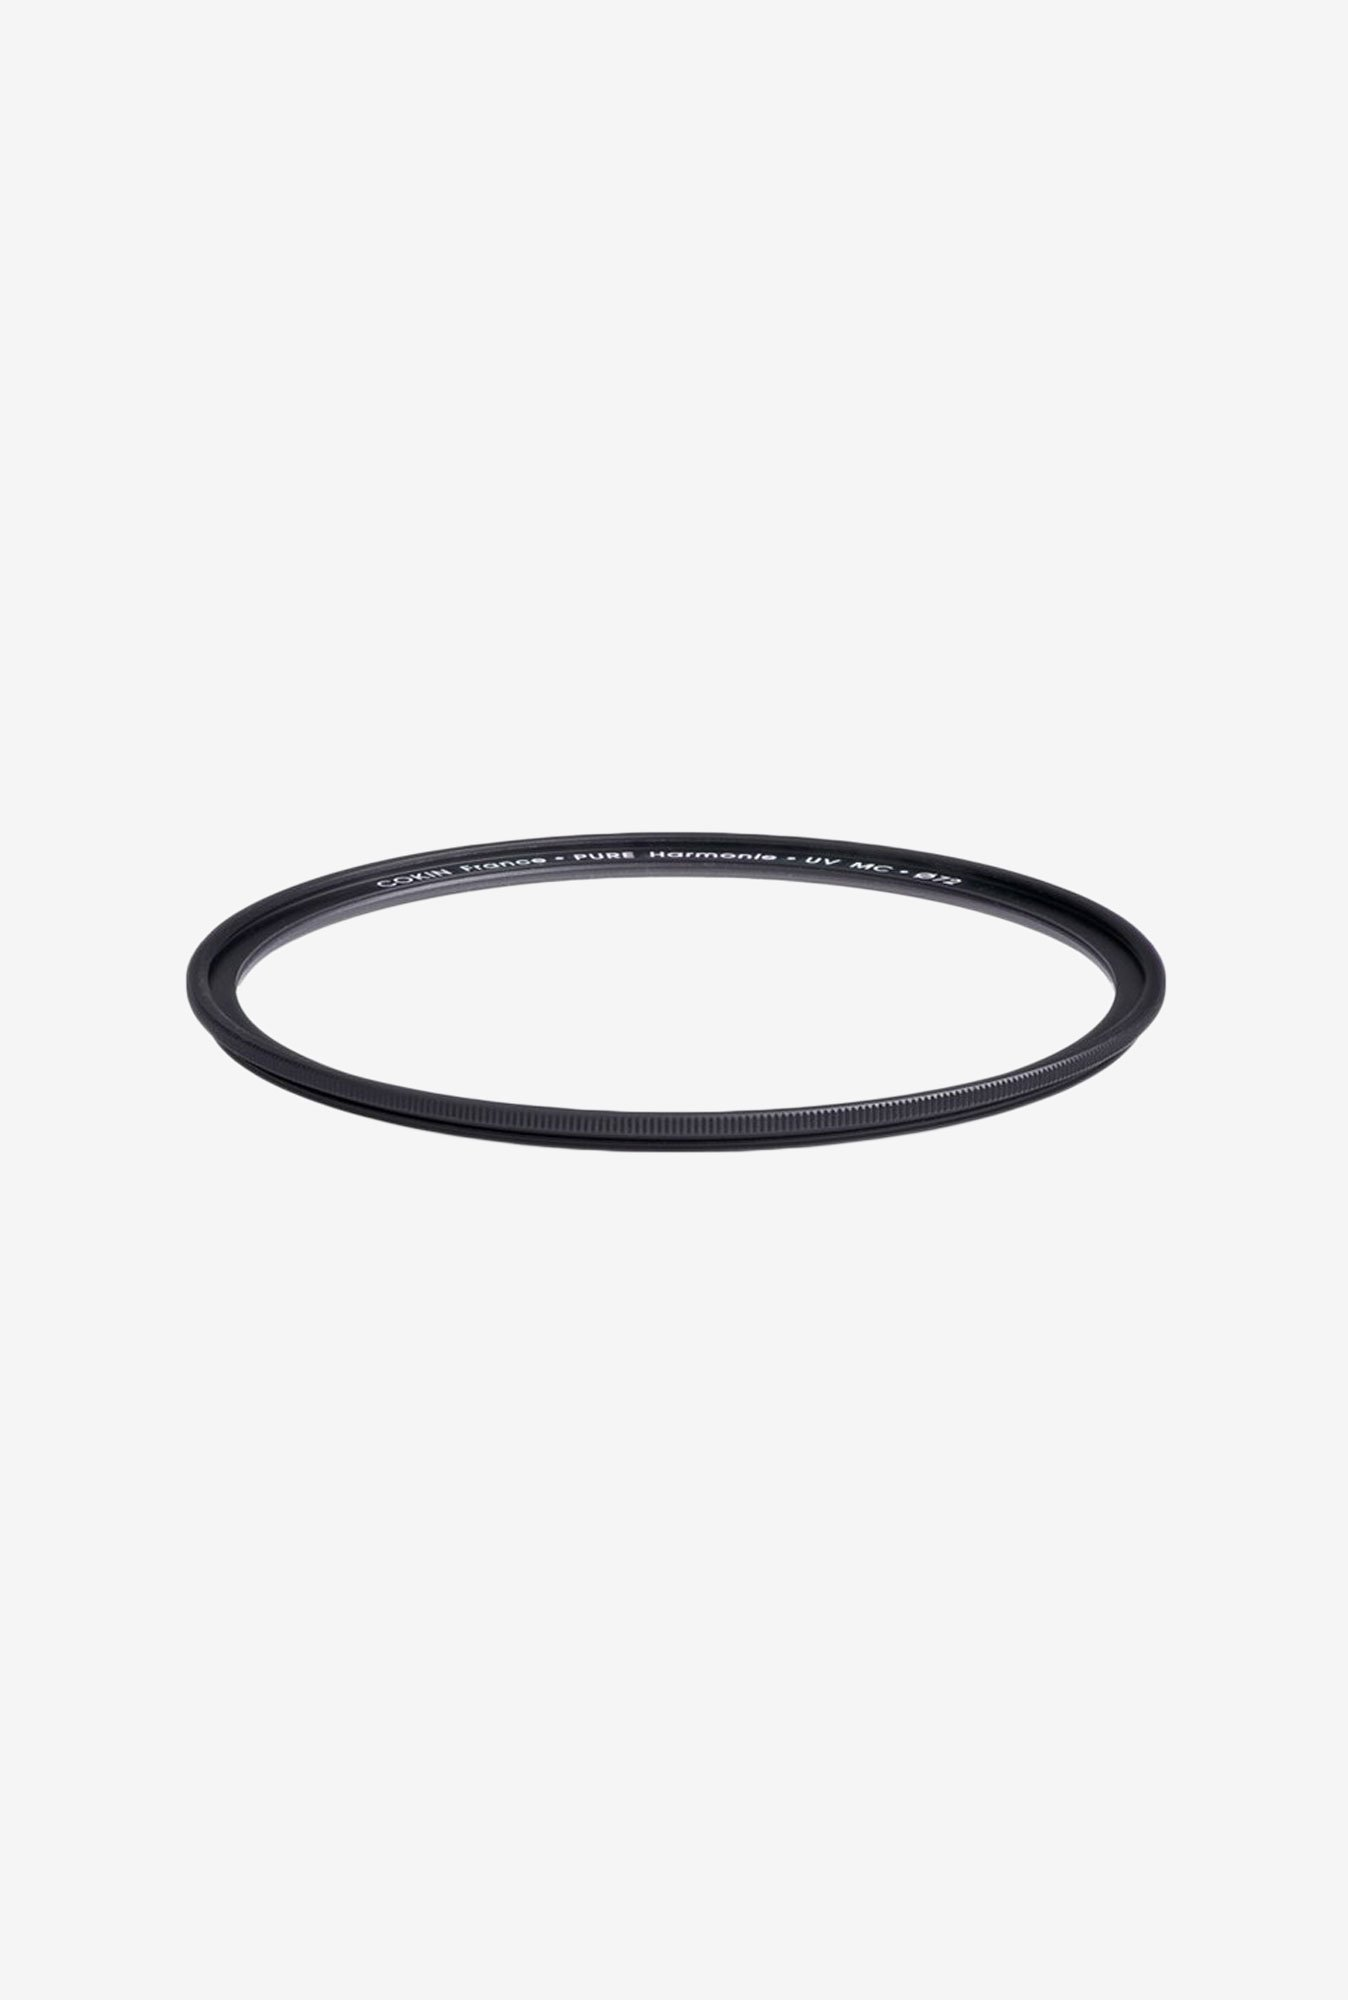 Cokin 82UVS Pure Harmonie Ultra Slim Round Filter (Black)